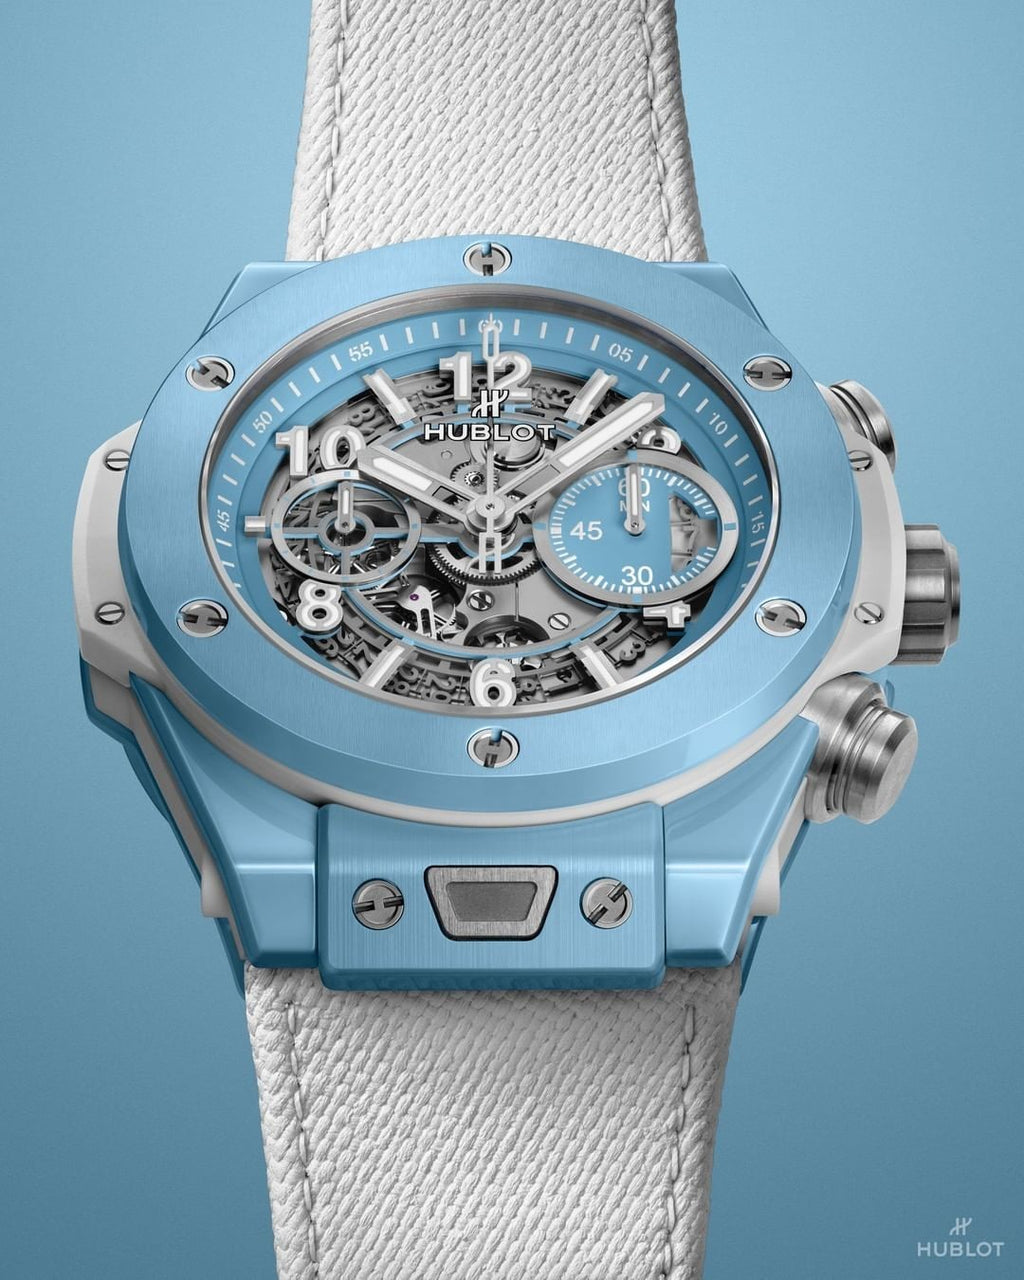 The Big Bang Unico Sky Blue is part of a one-two-color Hublot